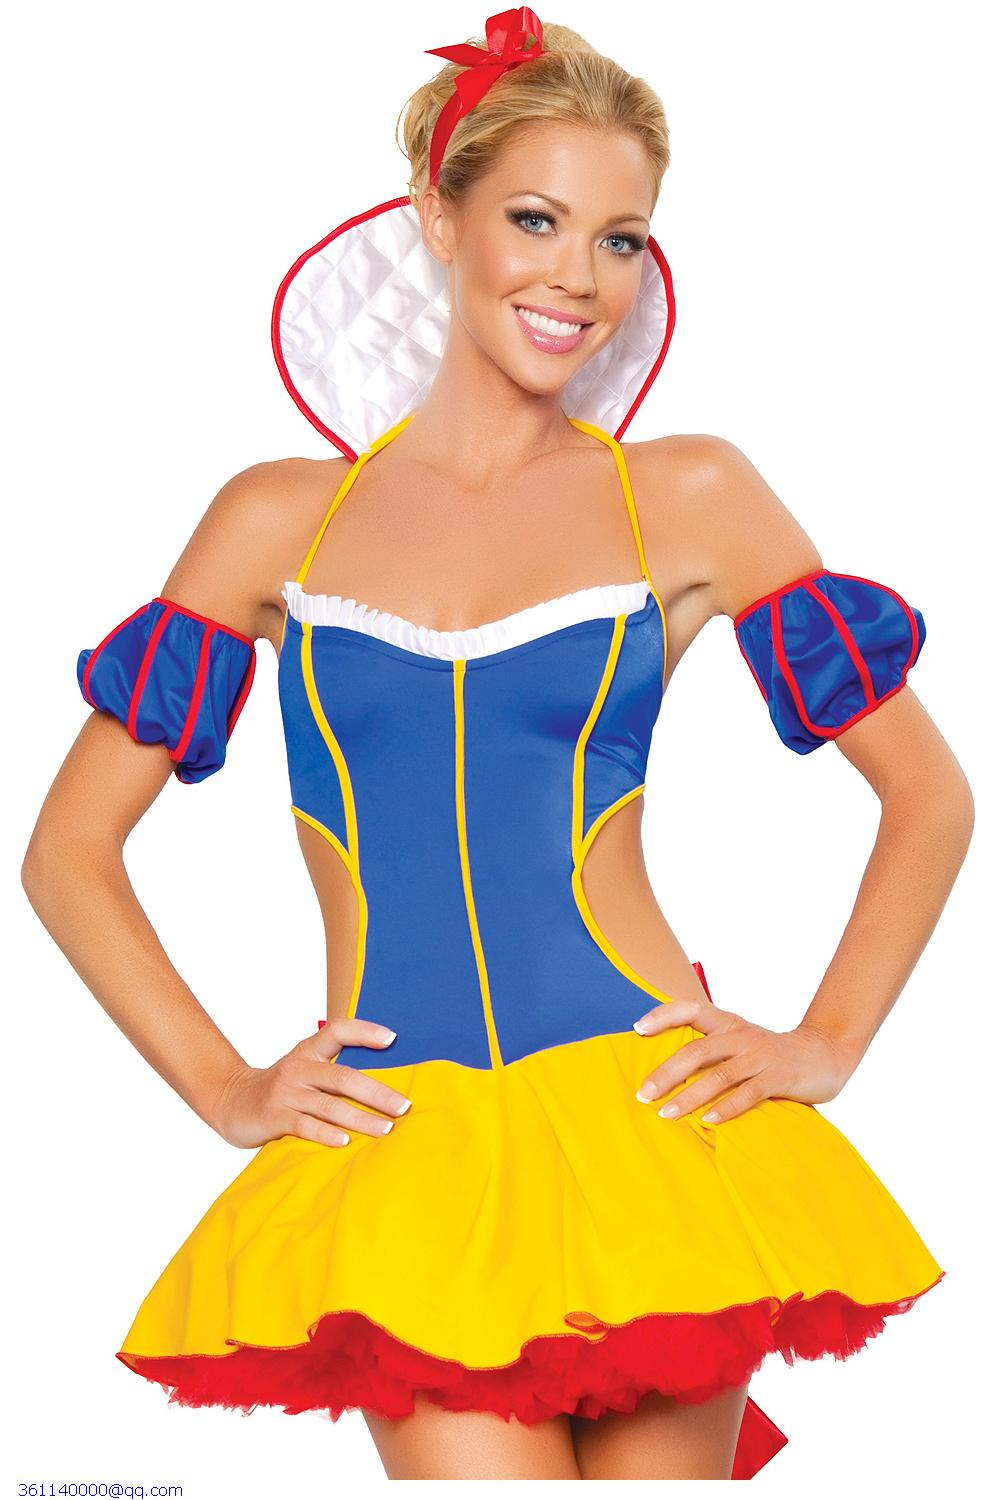 e13358438b7 Get Quotations · Fantasy Snow White Costume cosplay clothes sexy lingerie  hot babydoll dress